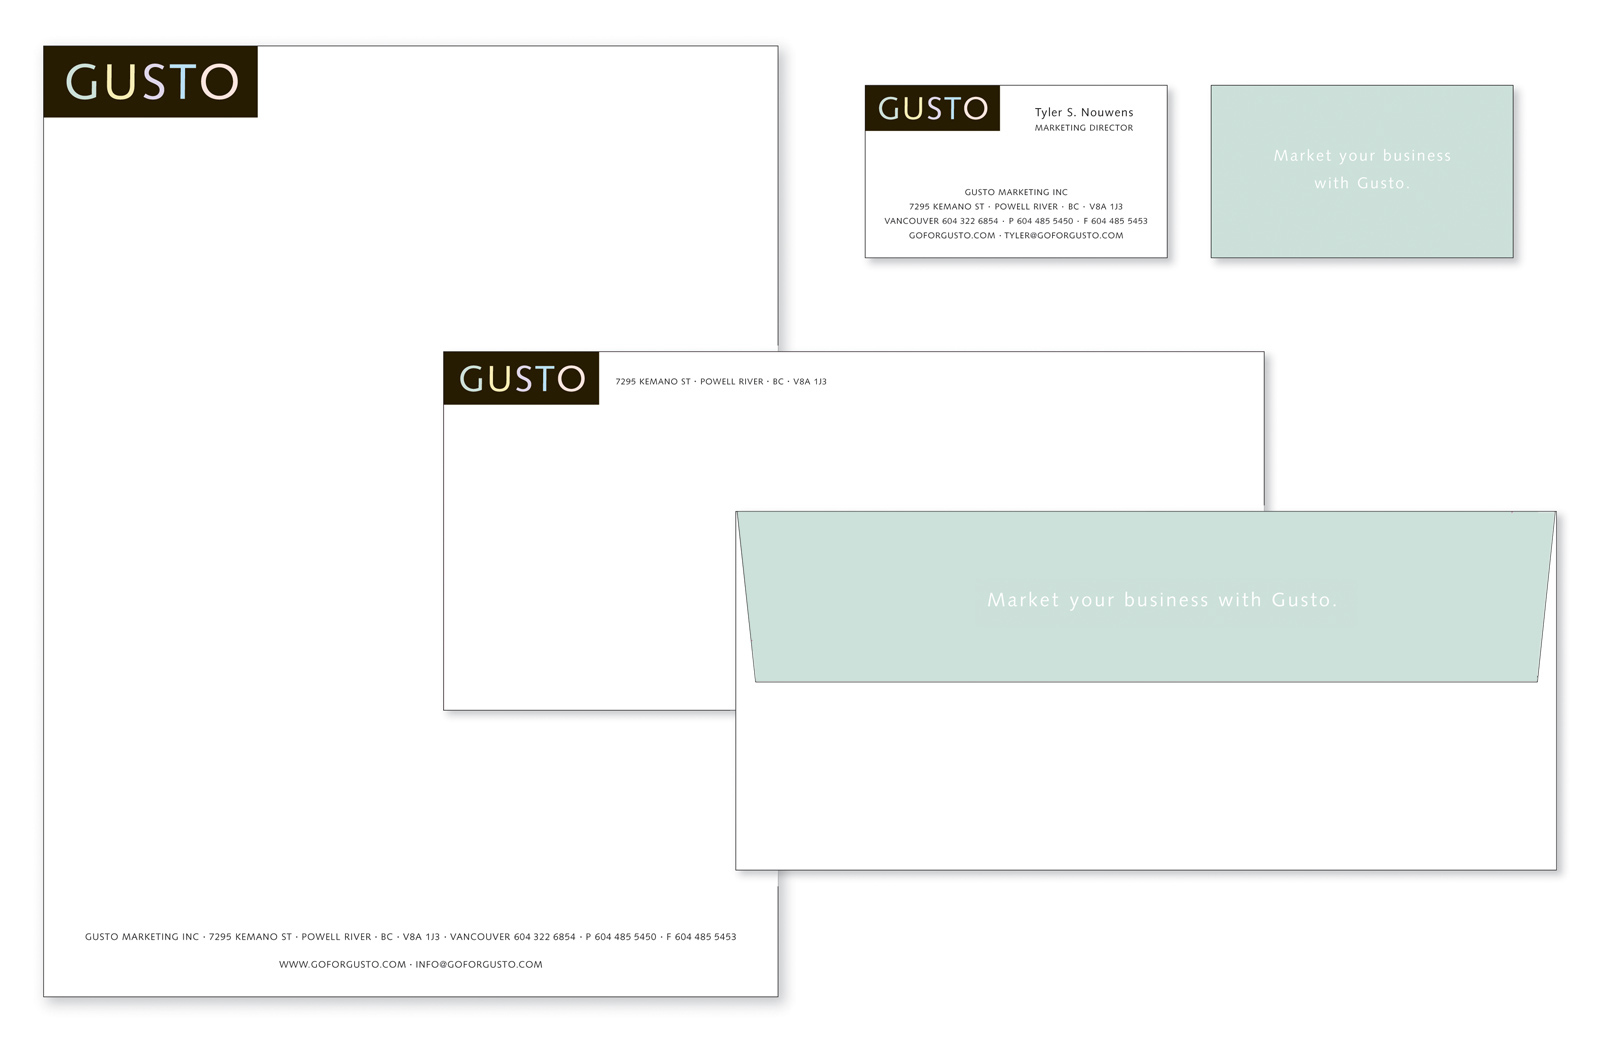 Corporate Identity Package